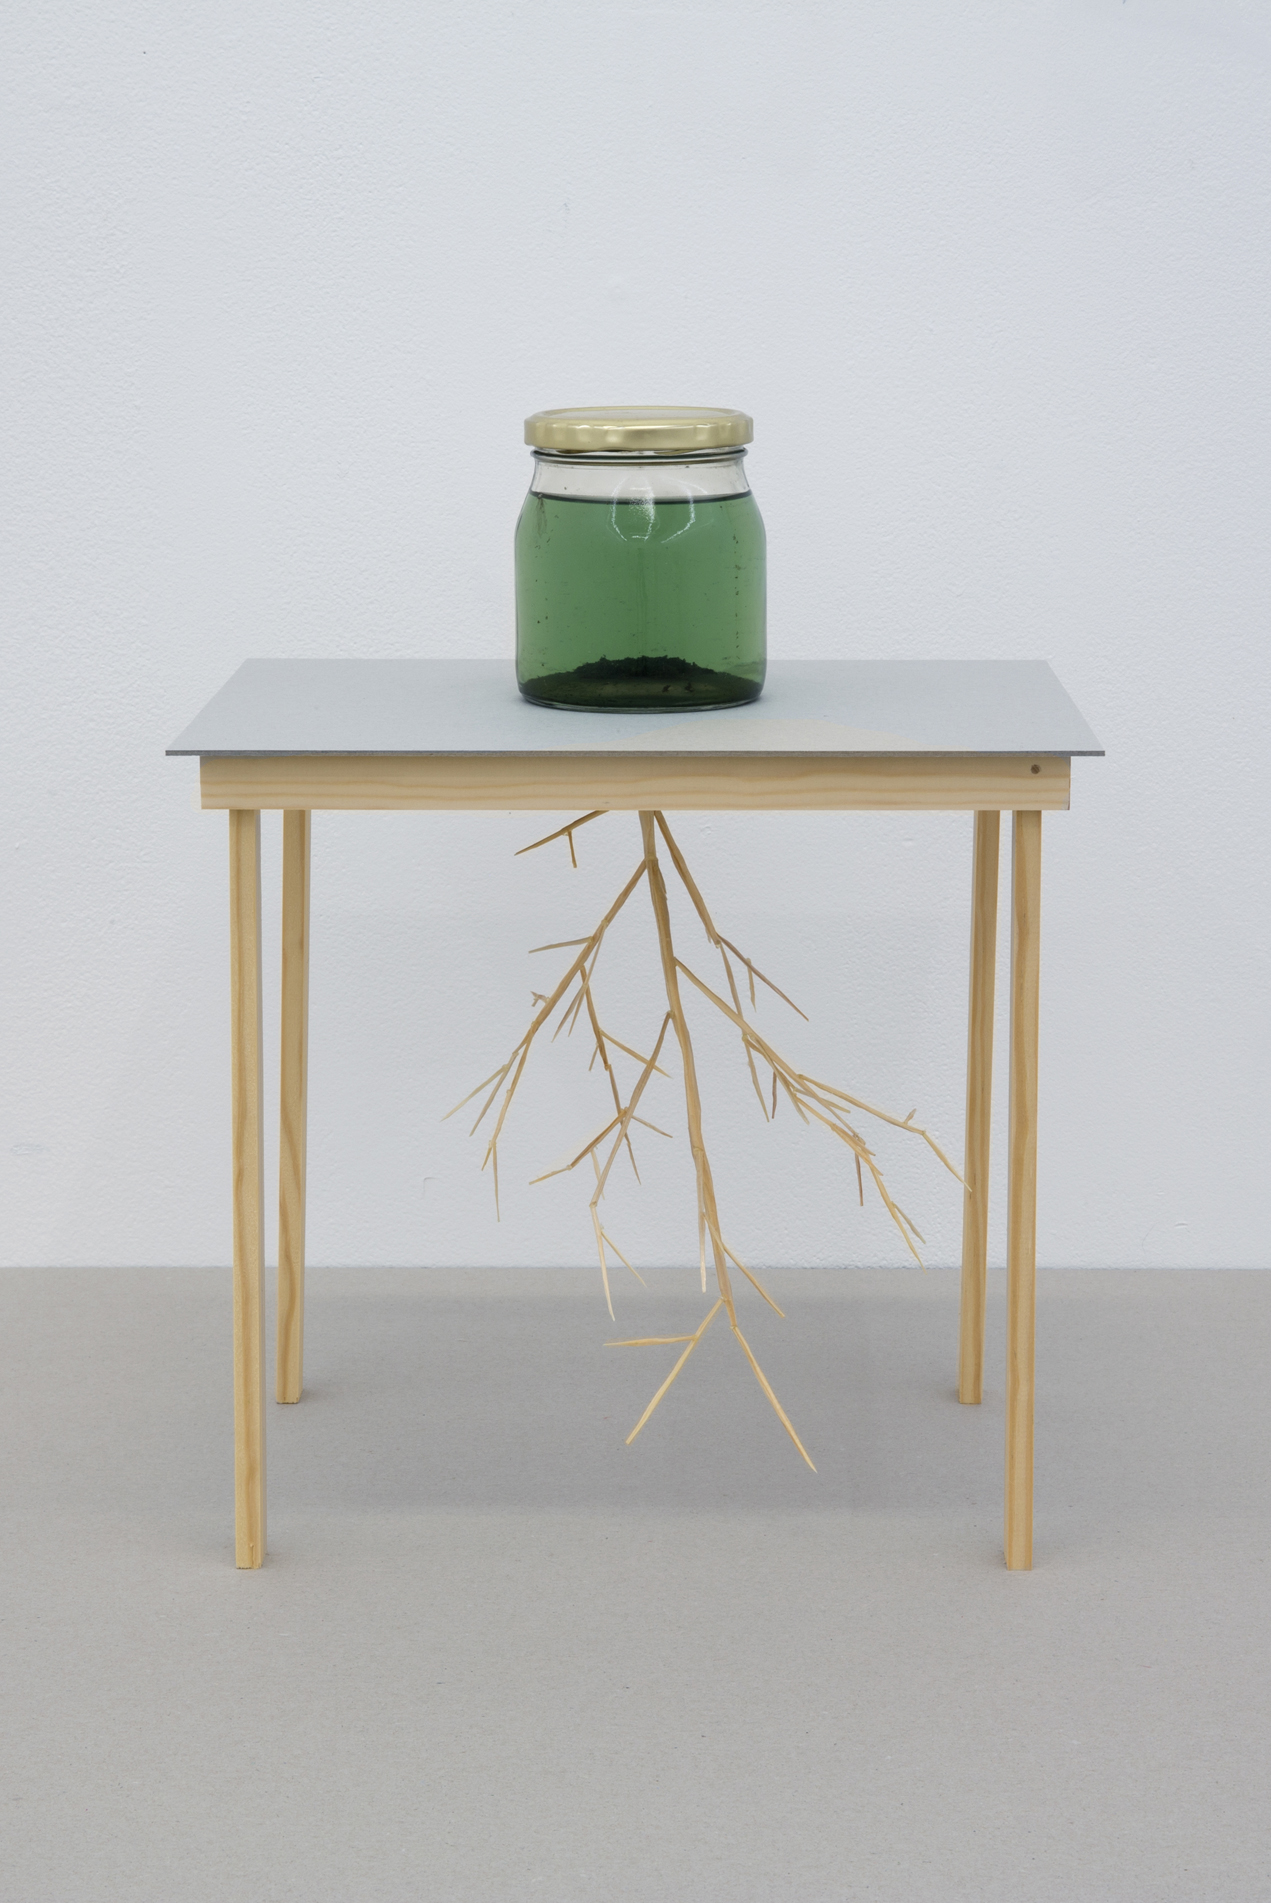 Sarah Jost – from an arboreal point of view